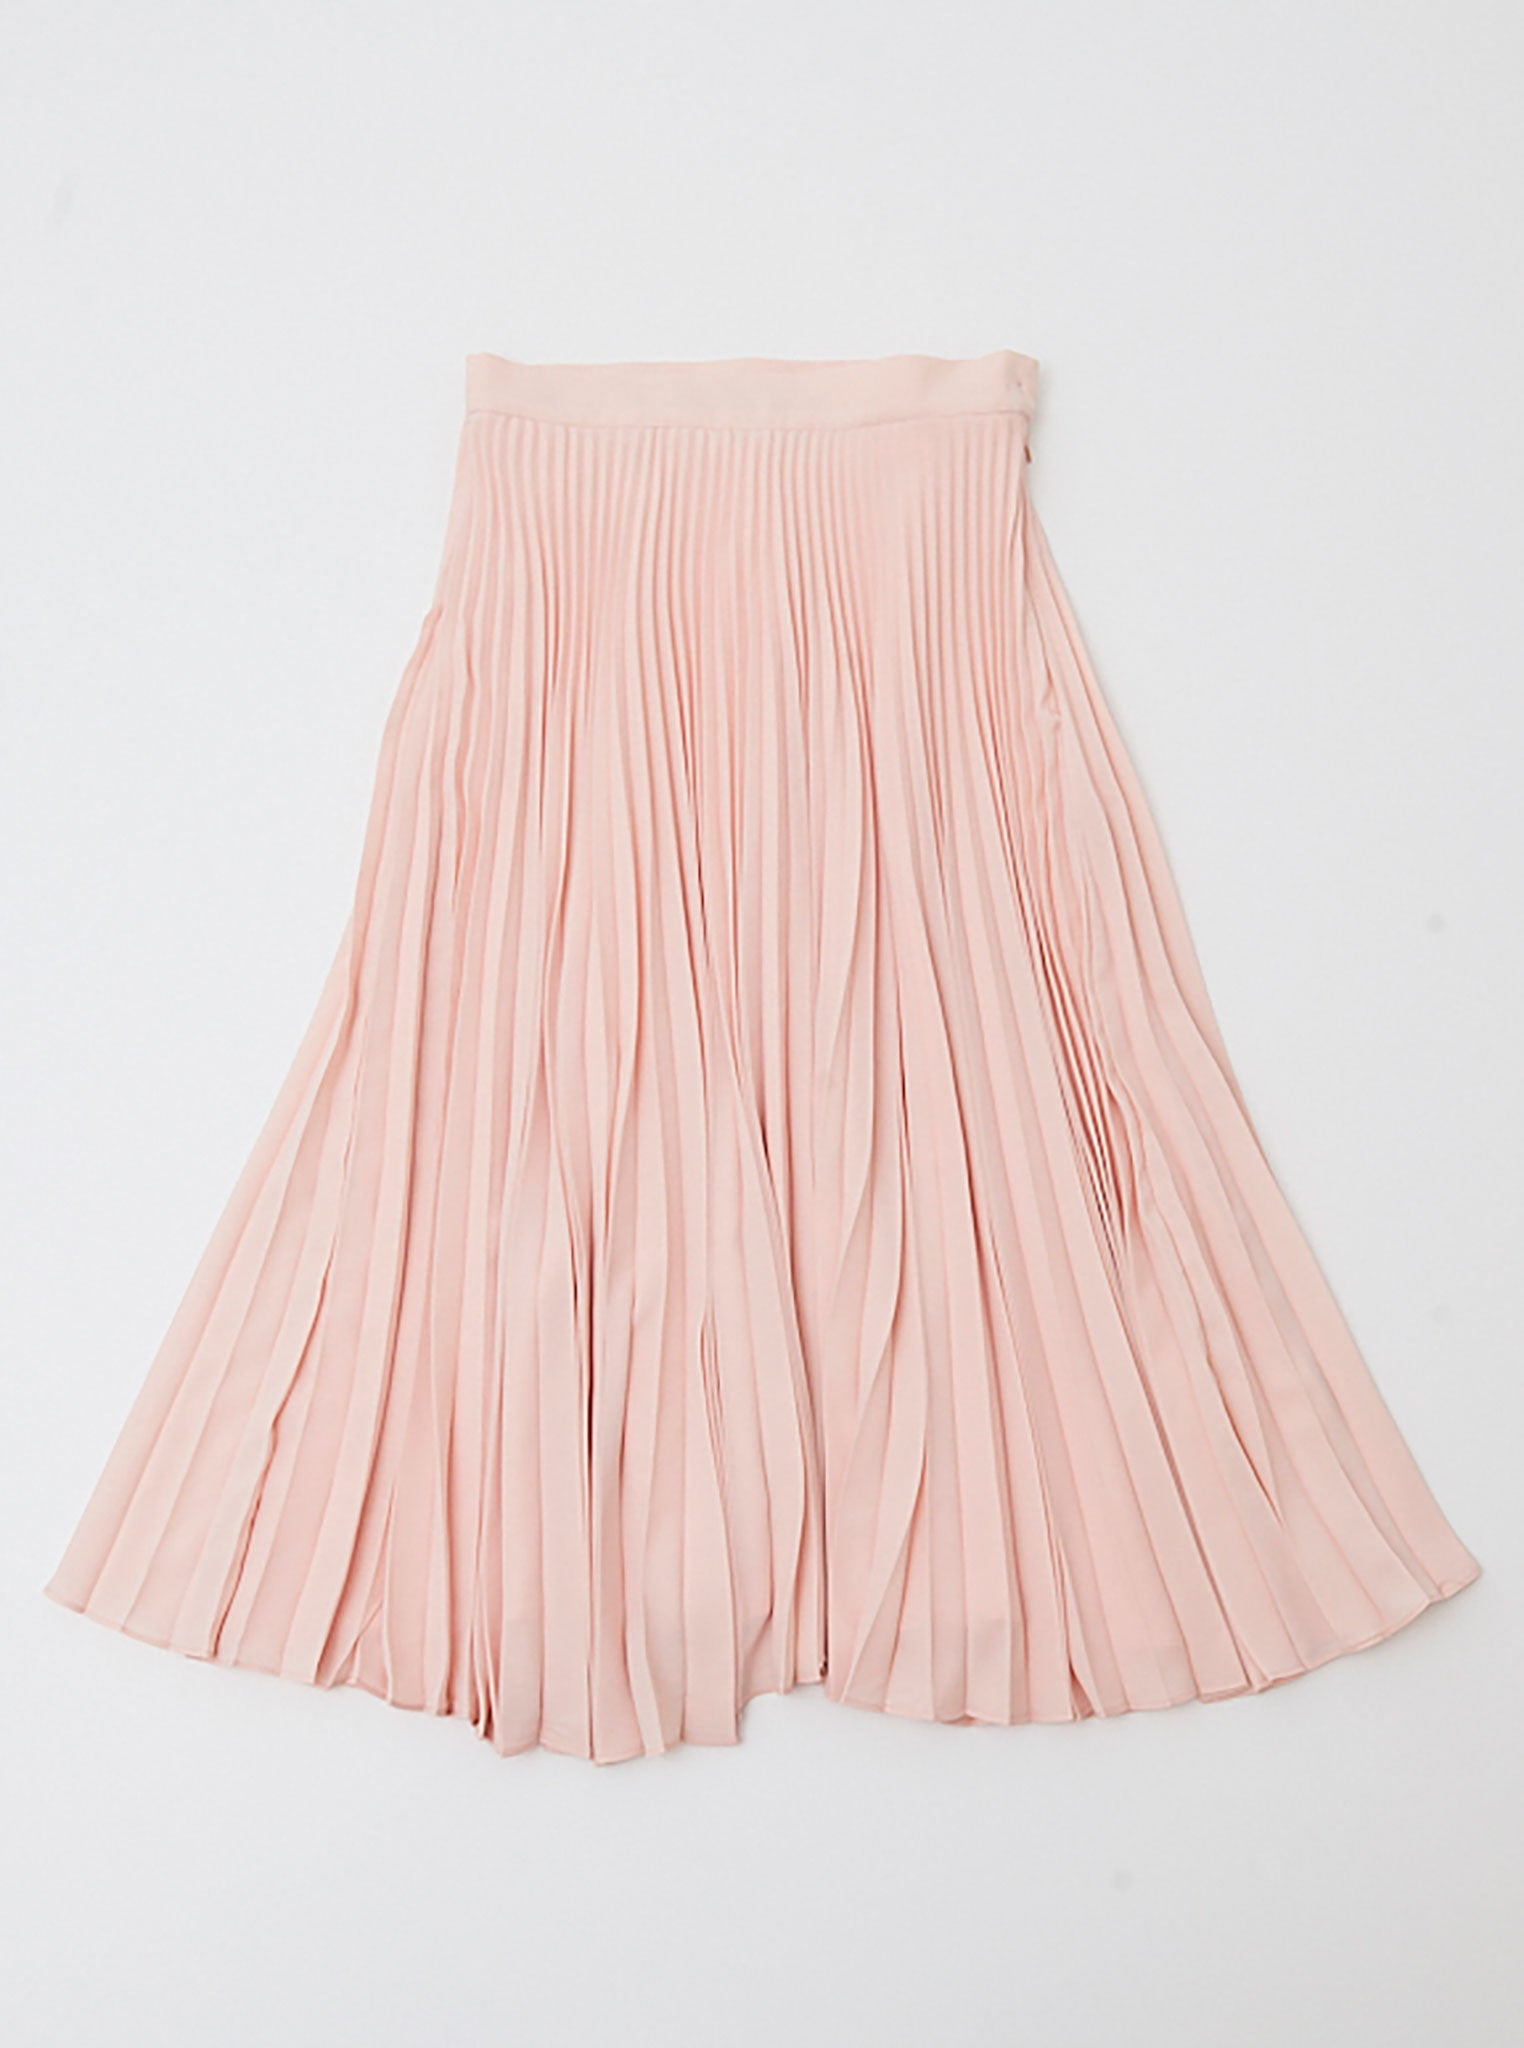 Vinti Andrews Blush Pink Pleated Skirt